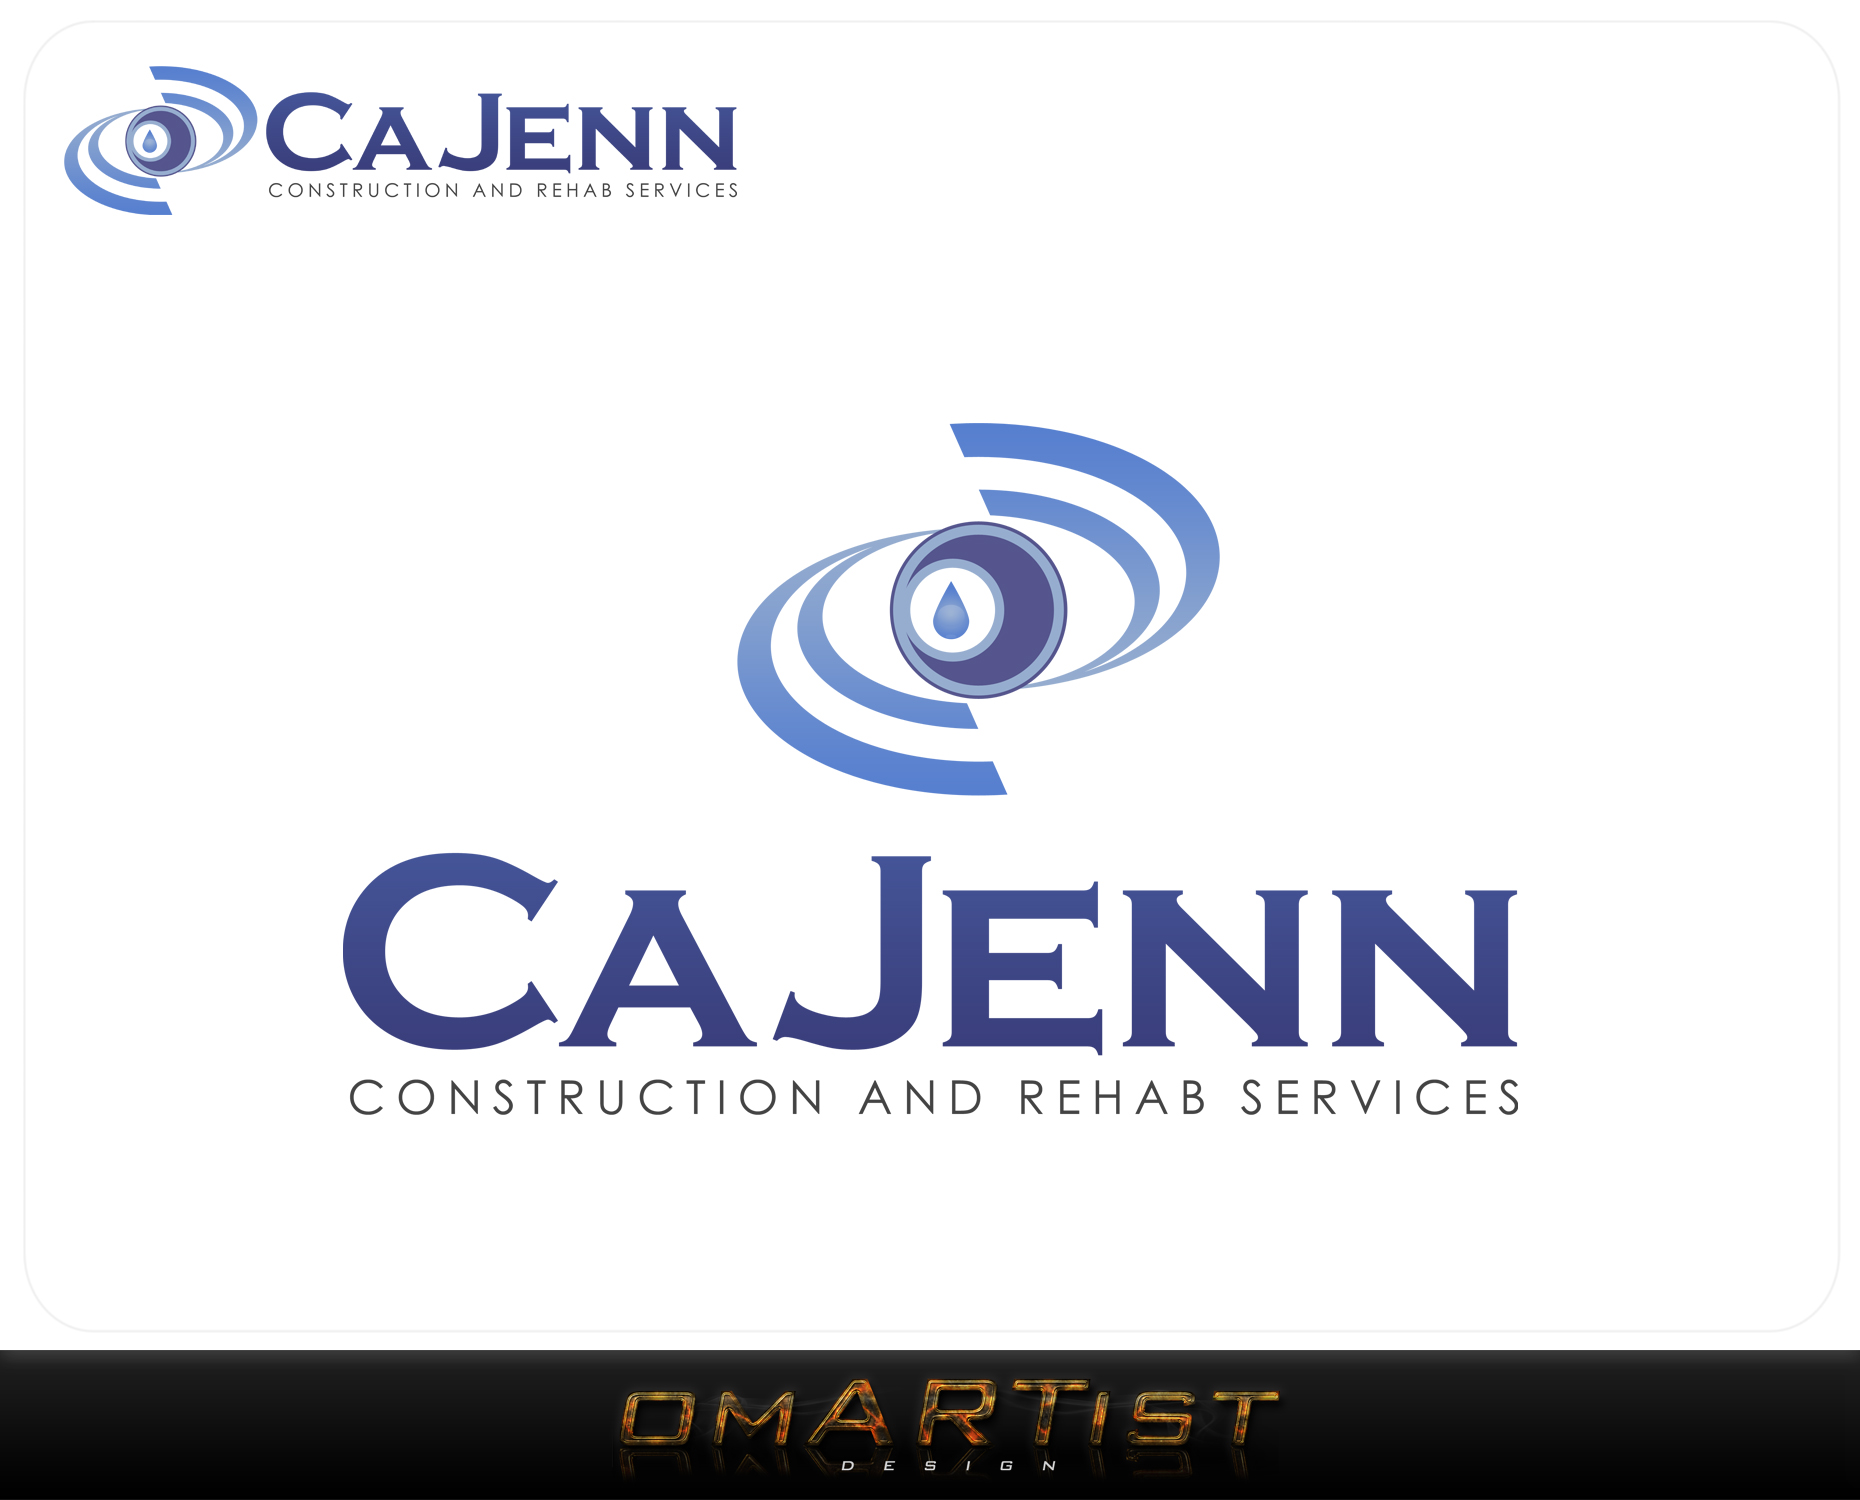 Logo Design by omARTist - Entry No. 203 in the Logo Design Contest New Logo Design for CaJenn Construction & Rehab Services.